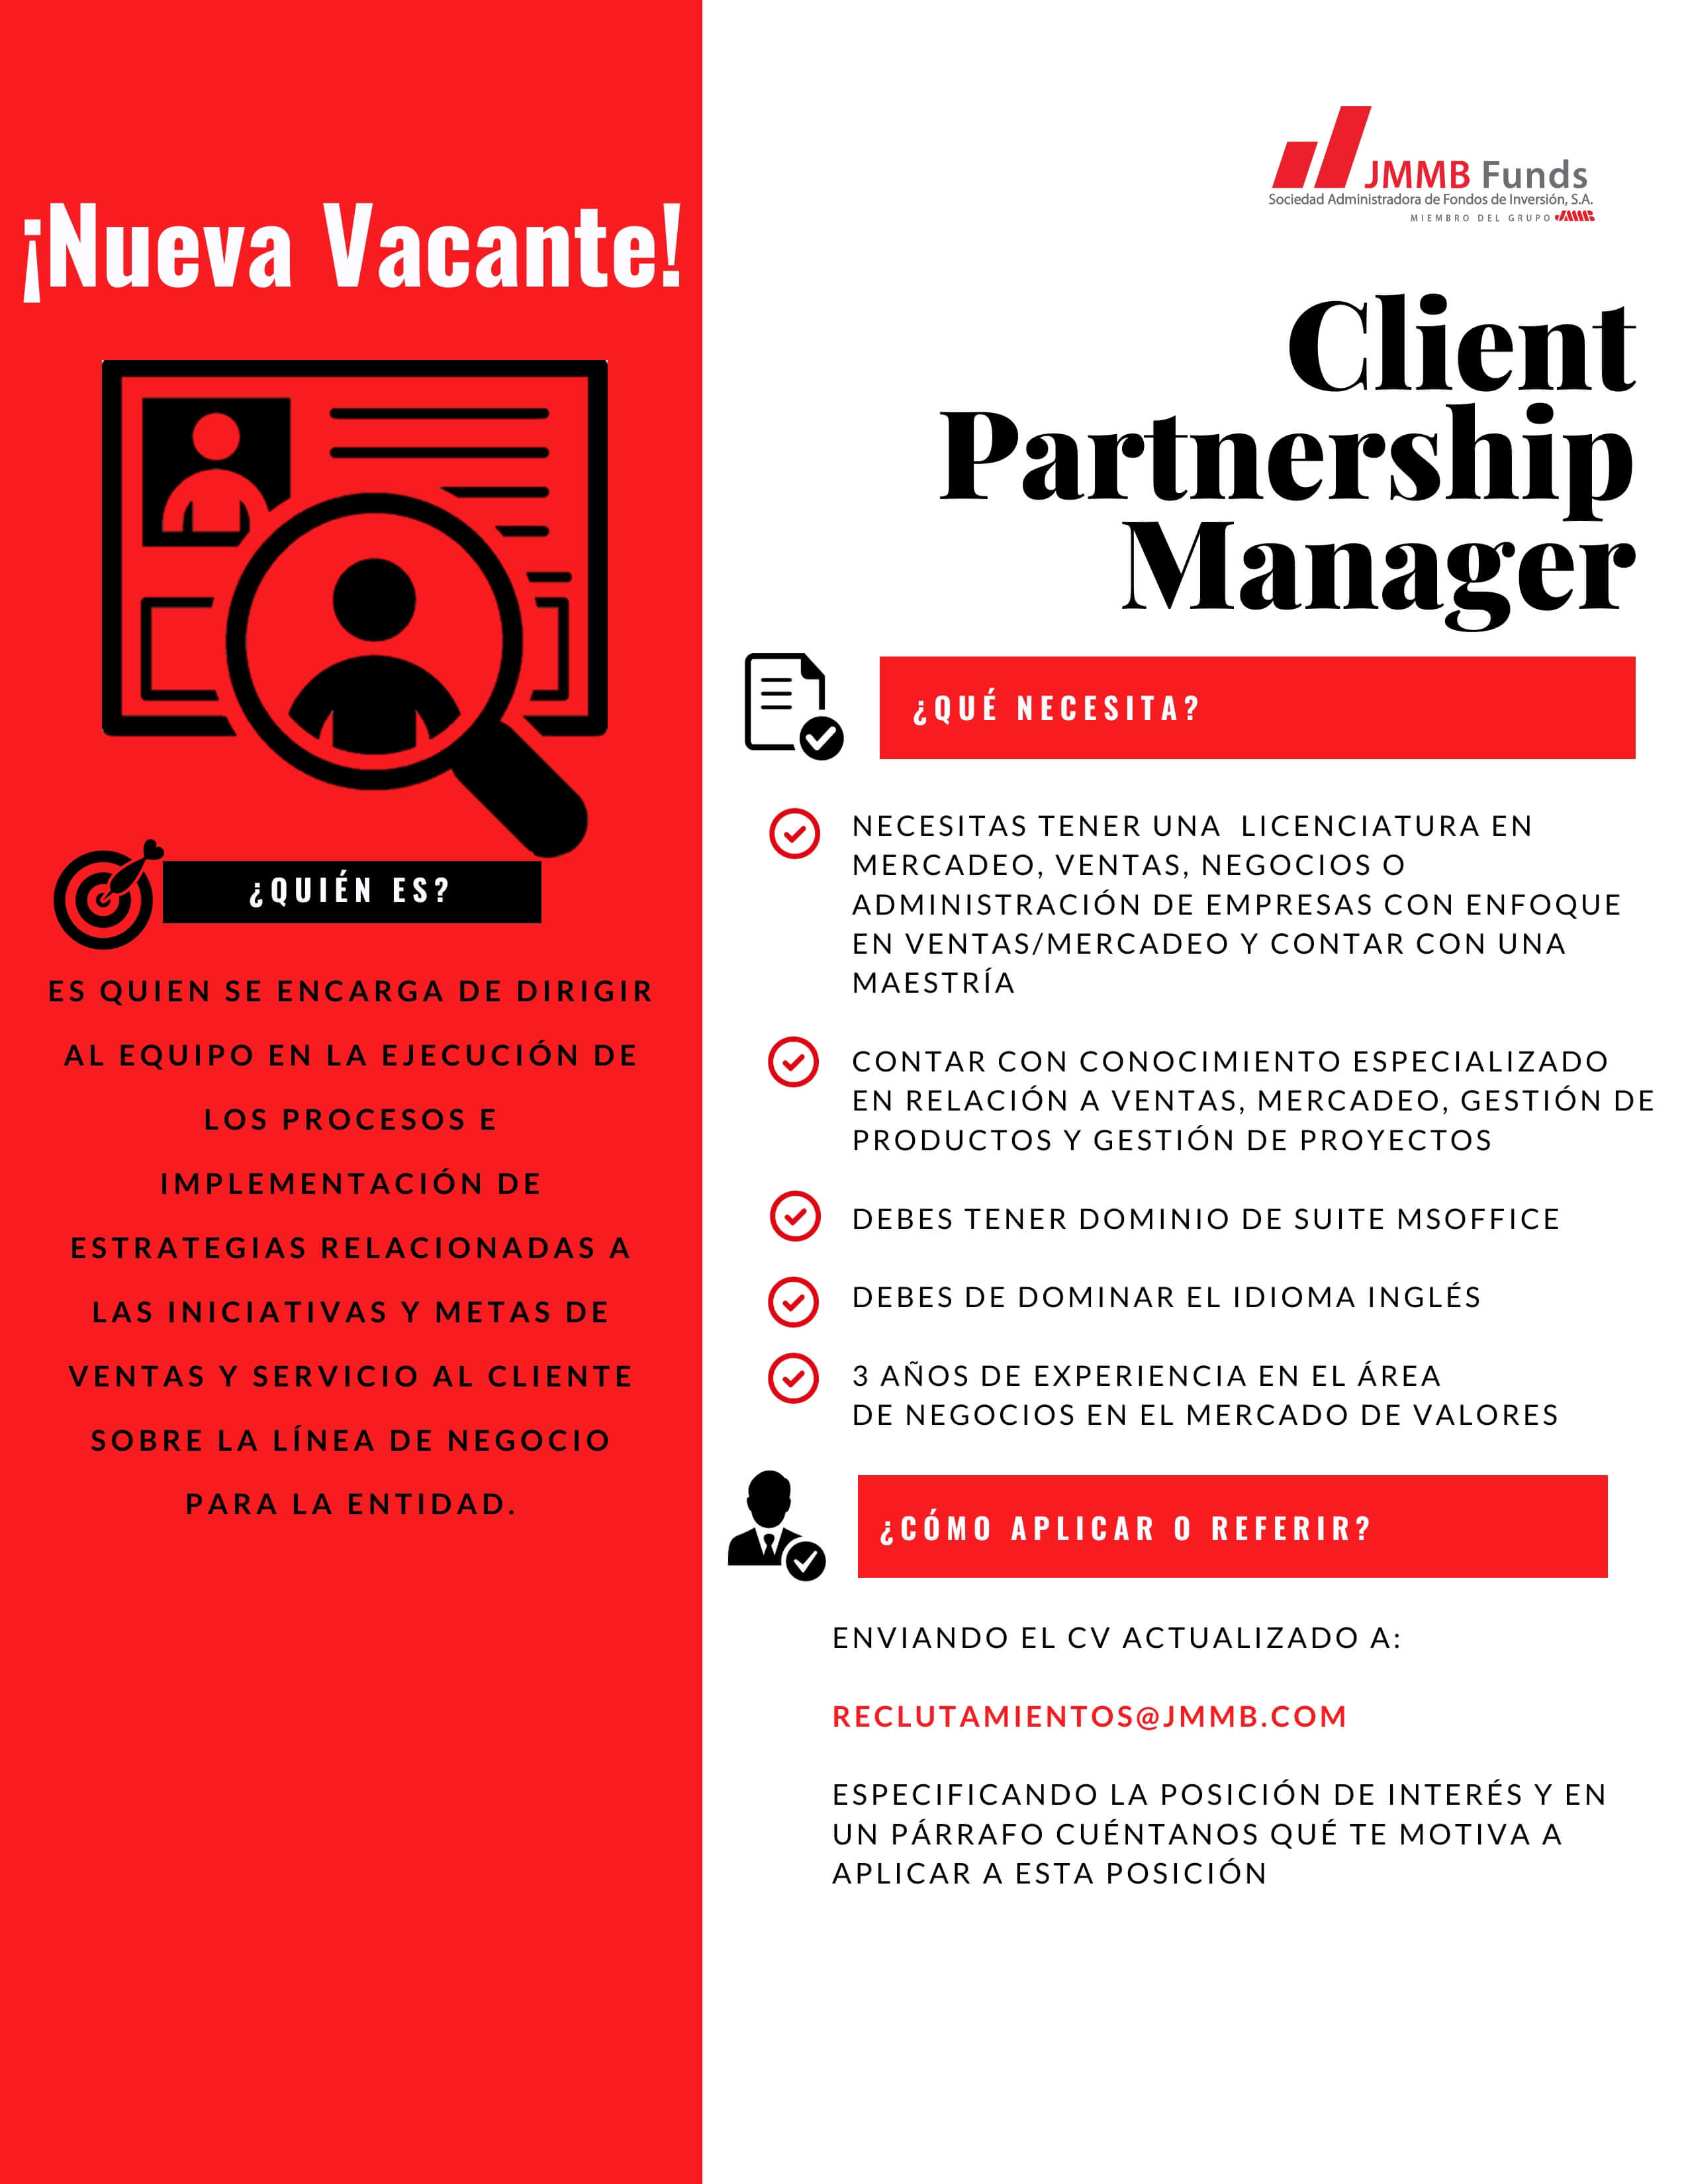 Client Partnership Manager